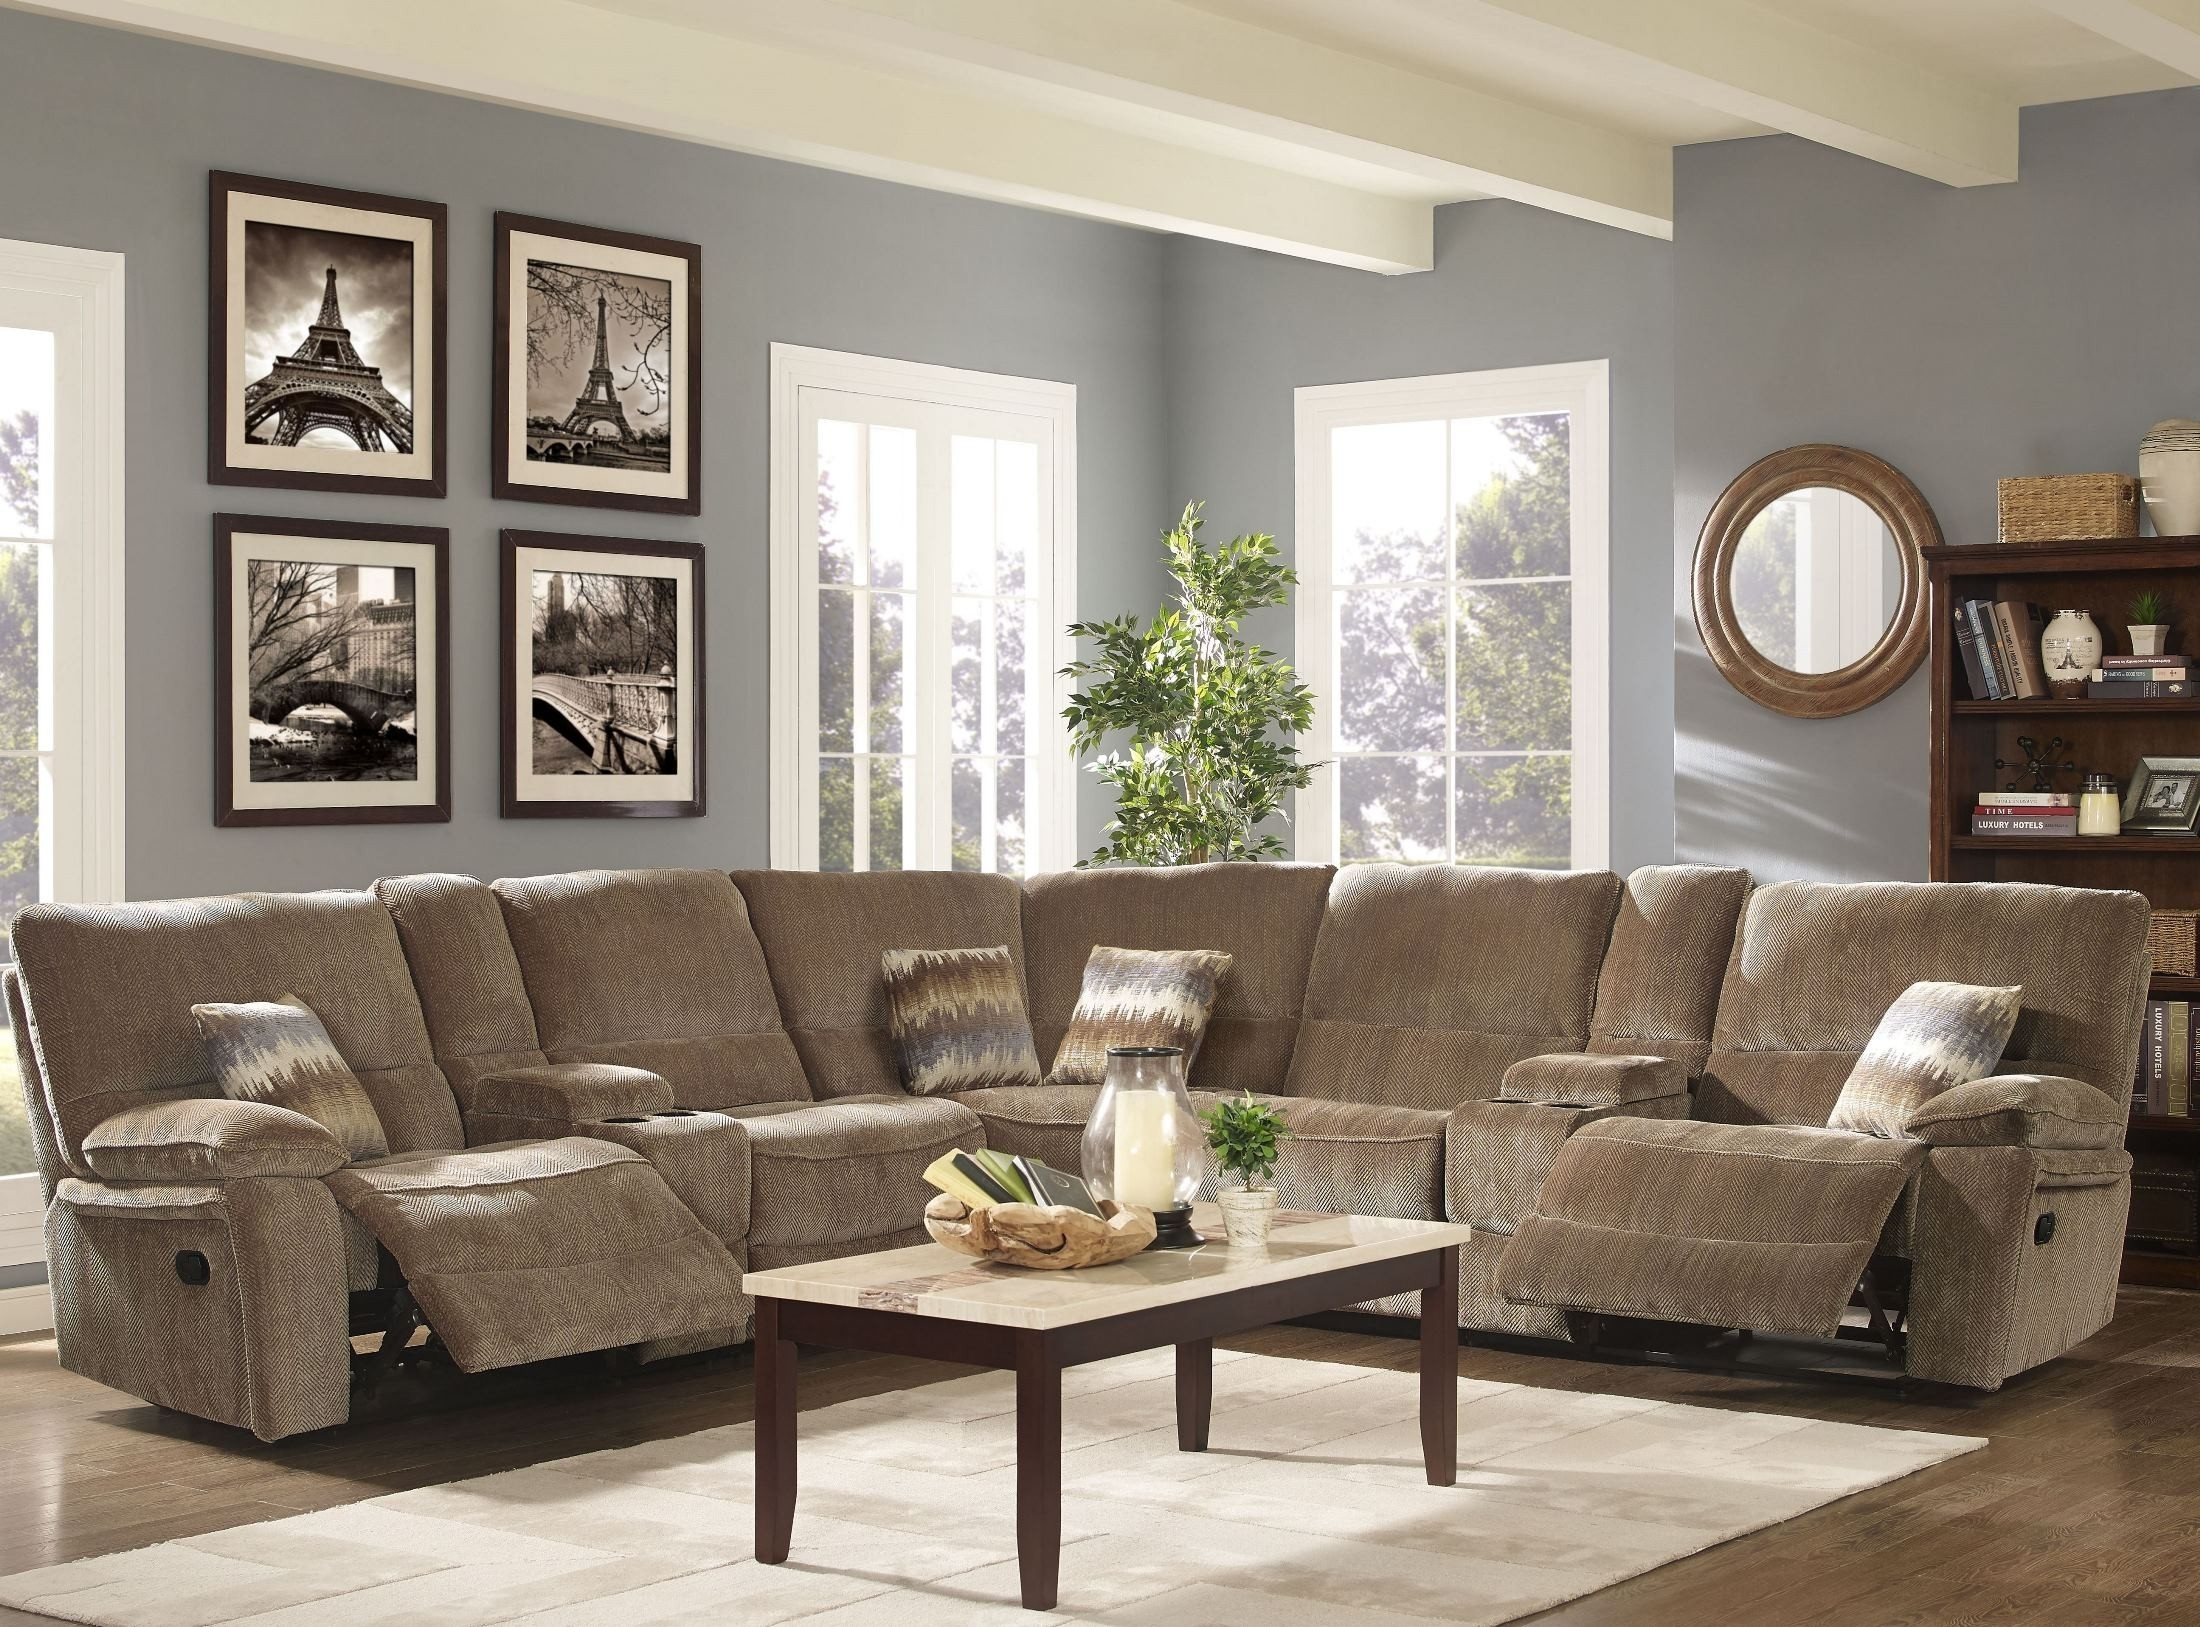 Ranger Bravo Sandalwood Power Reclining Sectional From New Classic Intended For Turdur 2 Piece Sectionals With Laf Loveseat (Image 19 of 25)